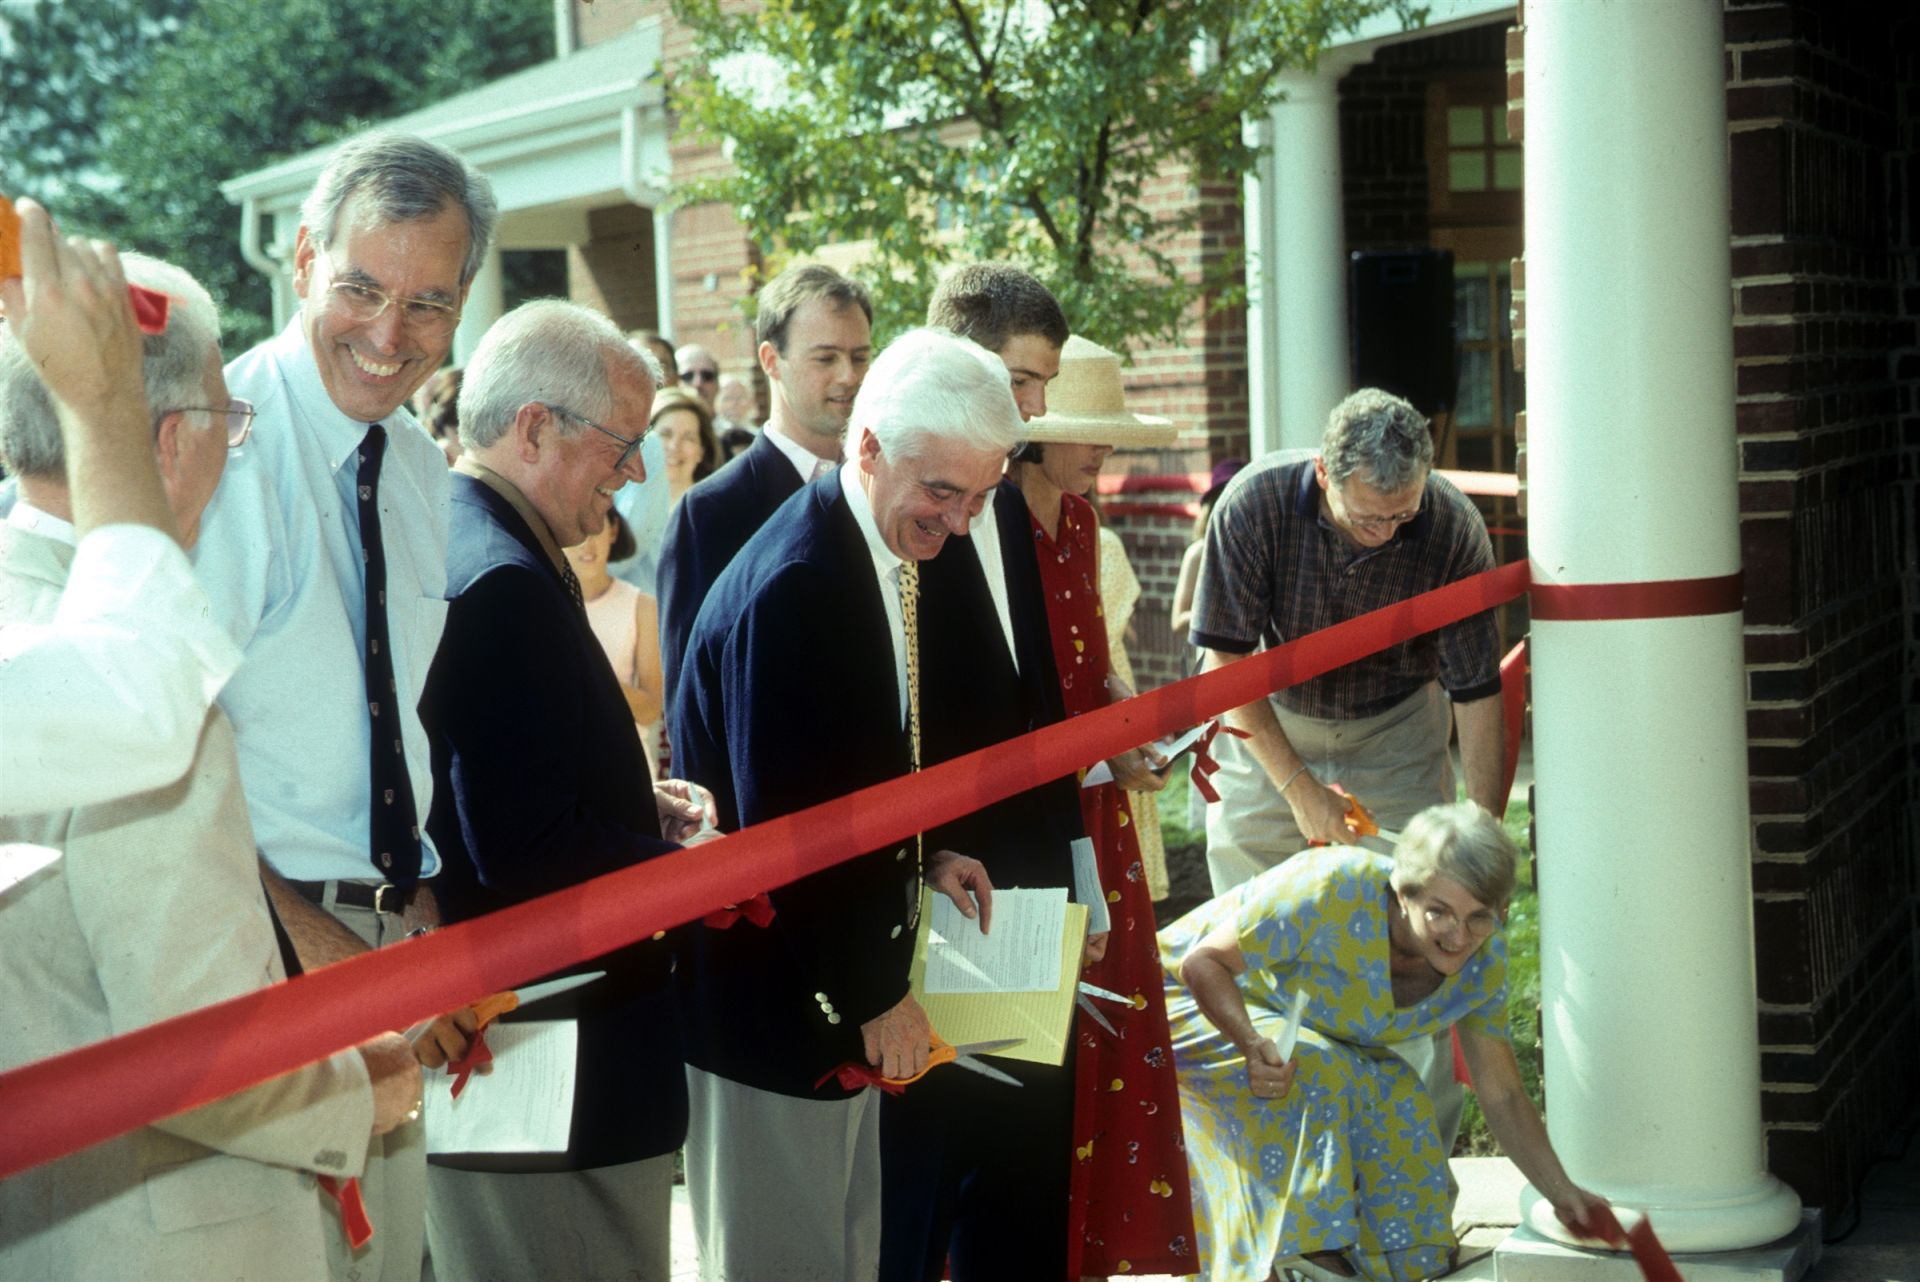 Ribbon cutting ceremony for new building - St. Andrew's Episcopal School